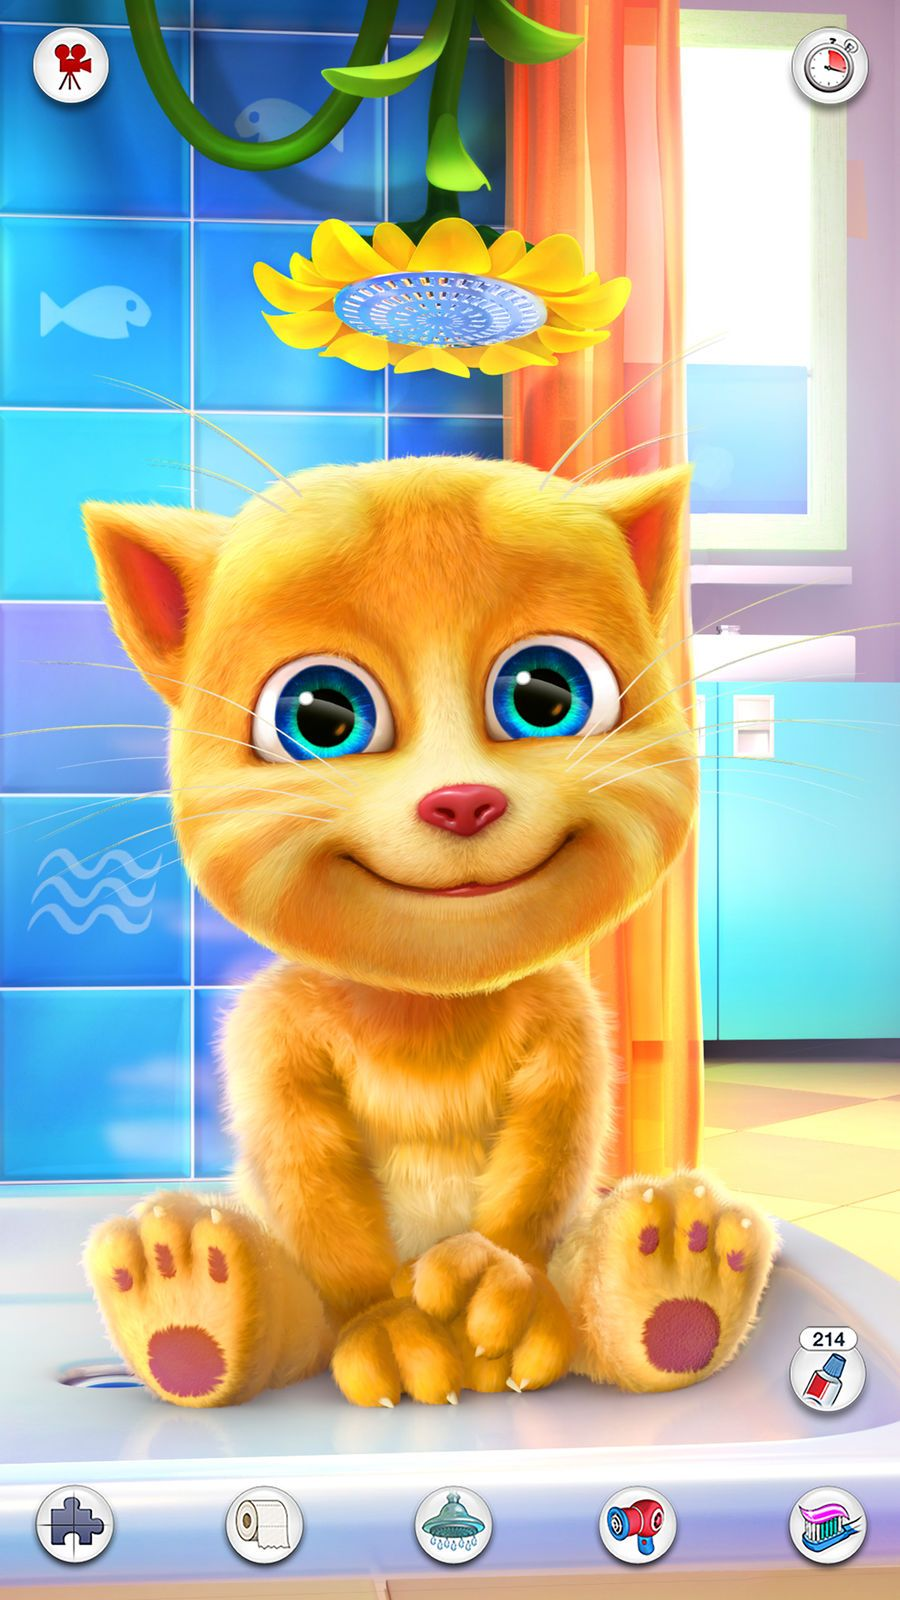 Talking Ginger iosEntertainmentappapps Iphone games